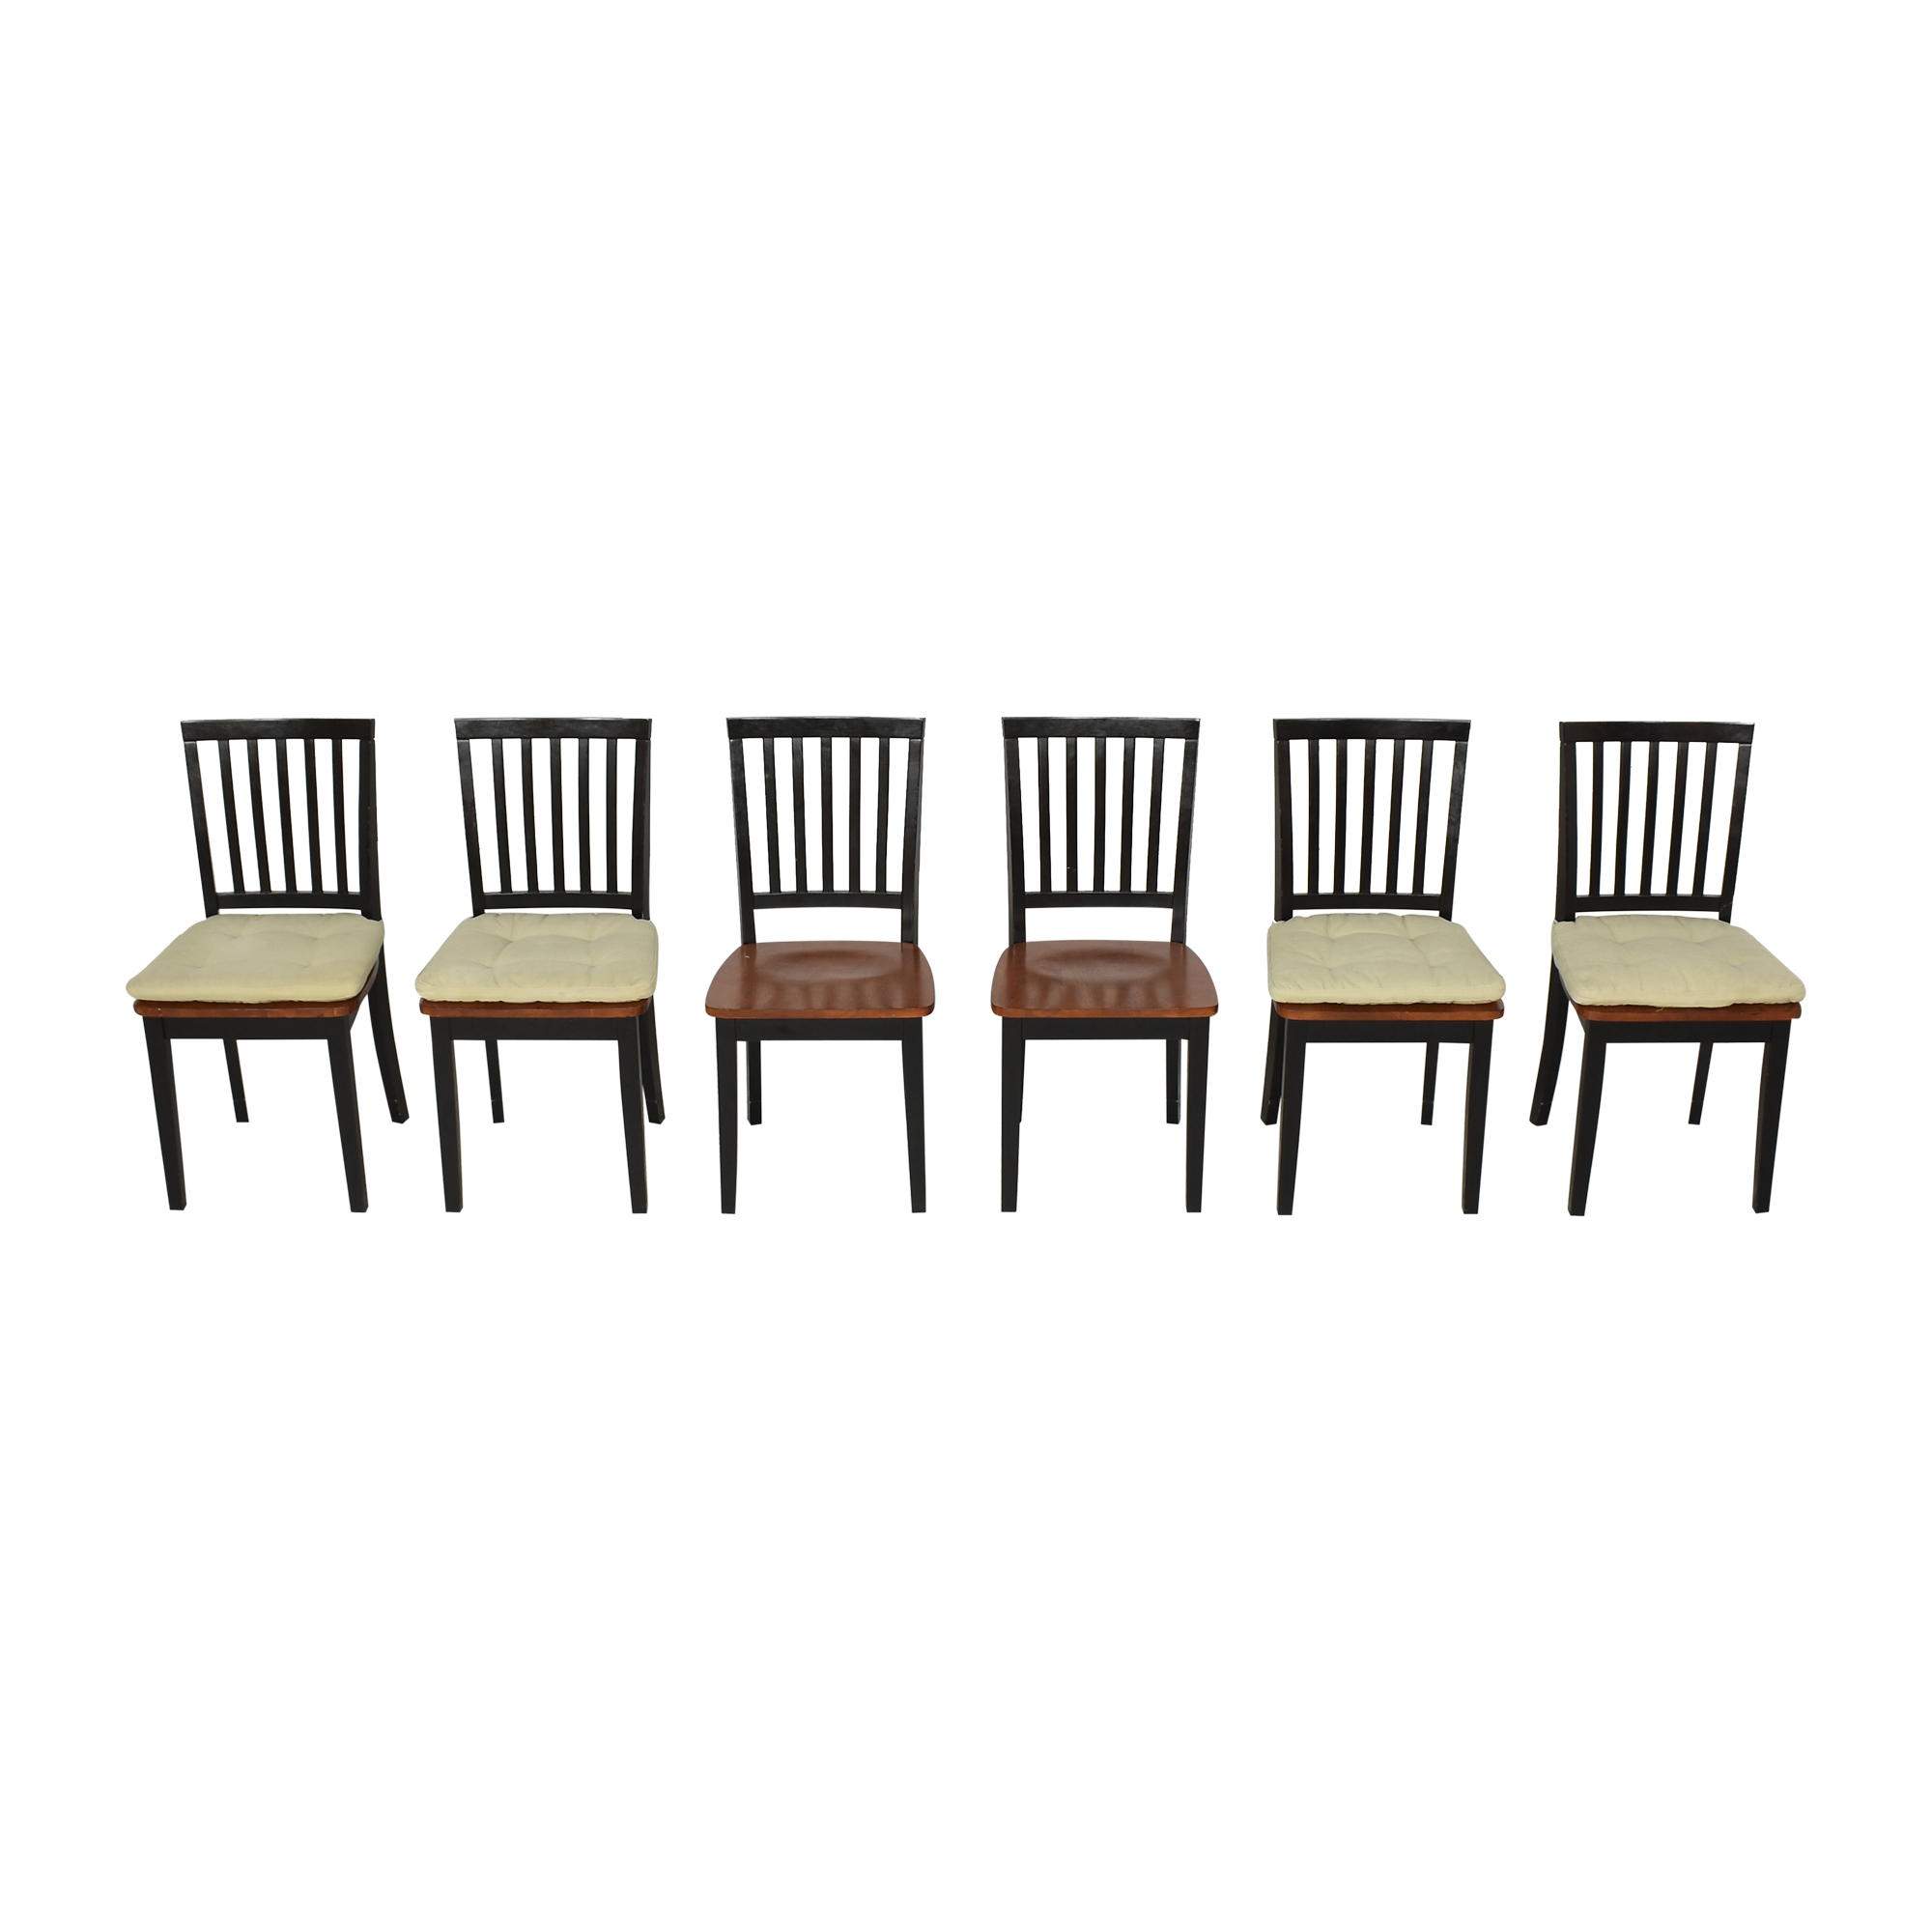 Crate & Barrel Crate & Barrel Village Bruno Dining Chairs on sale